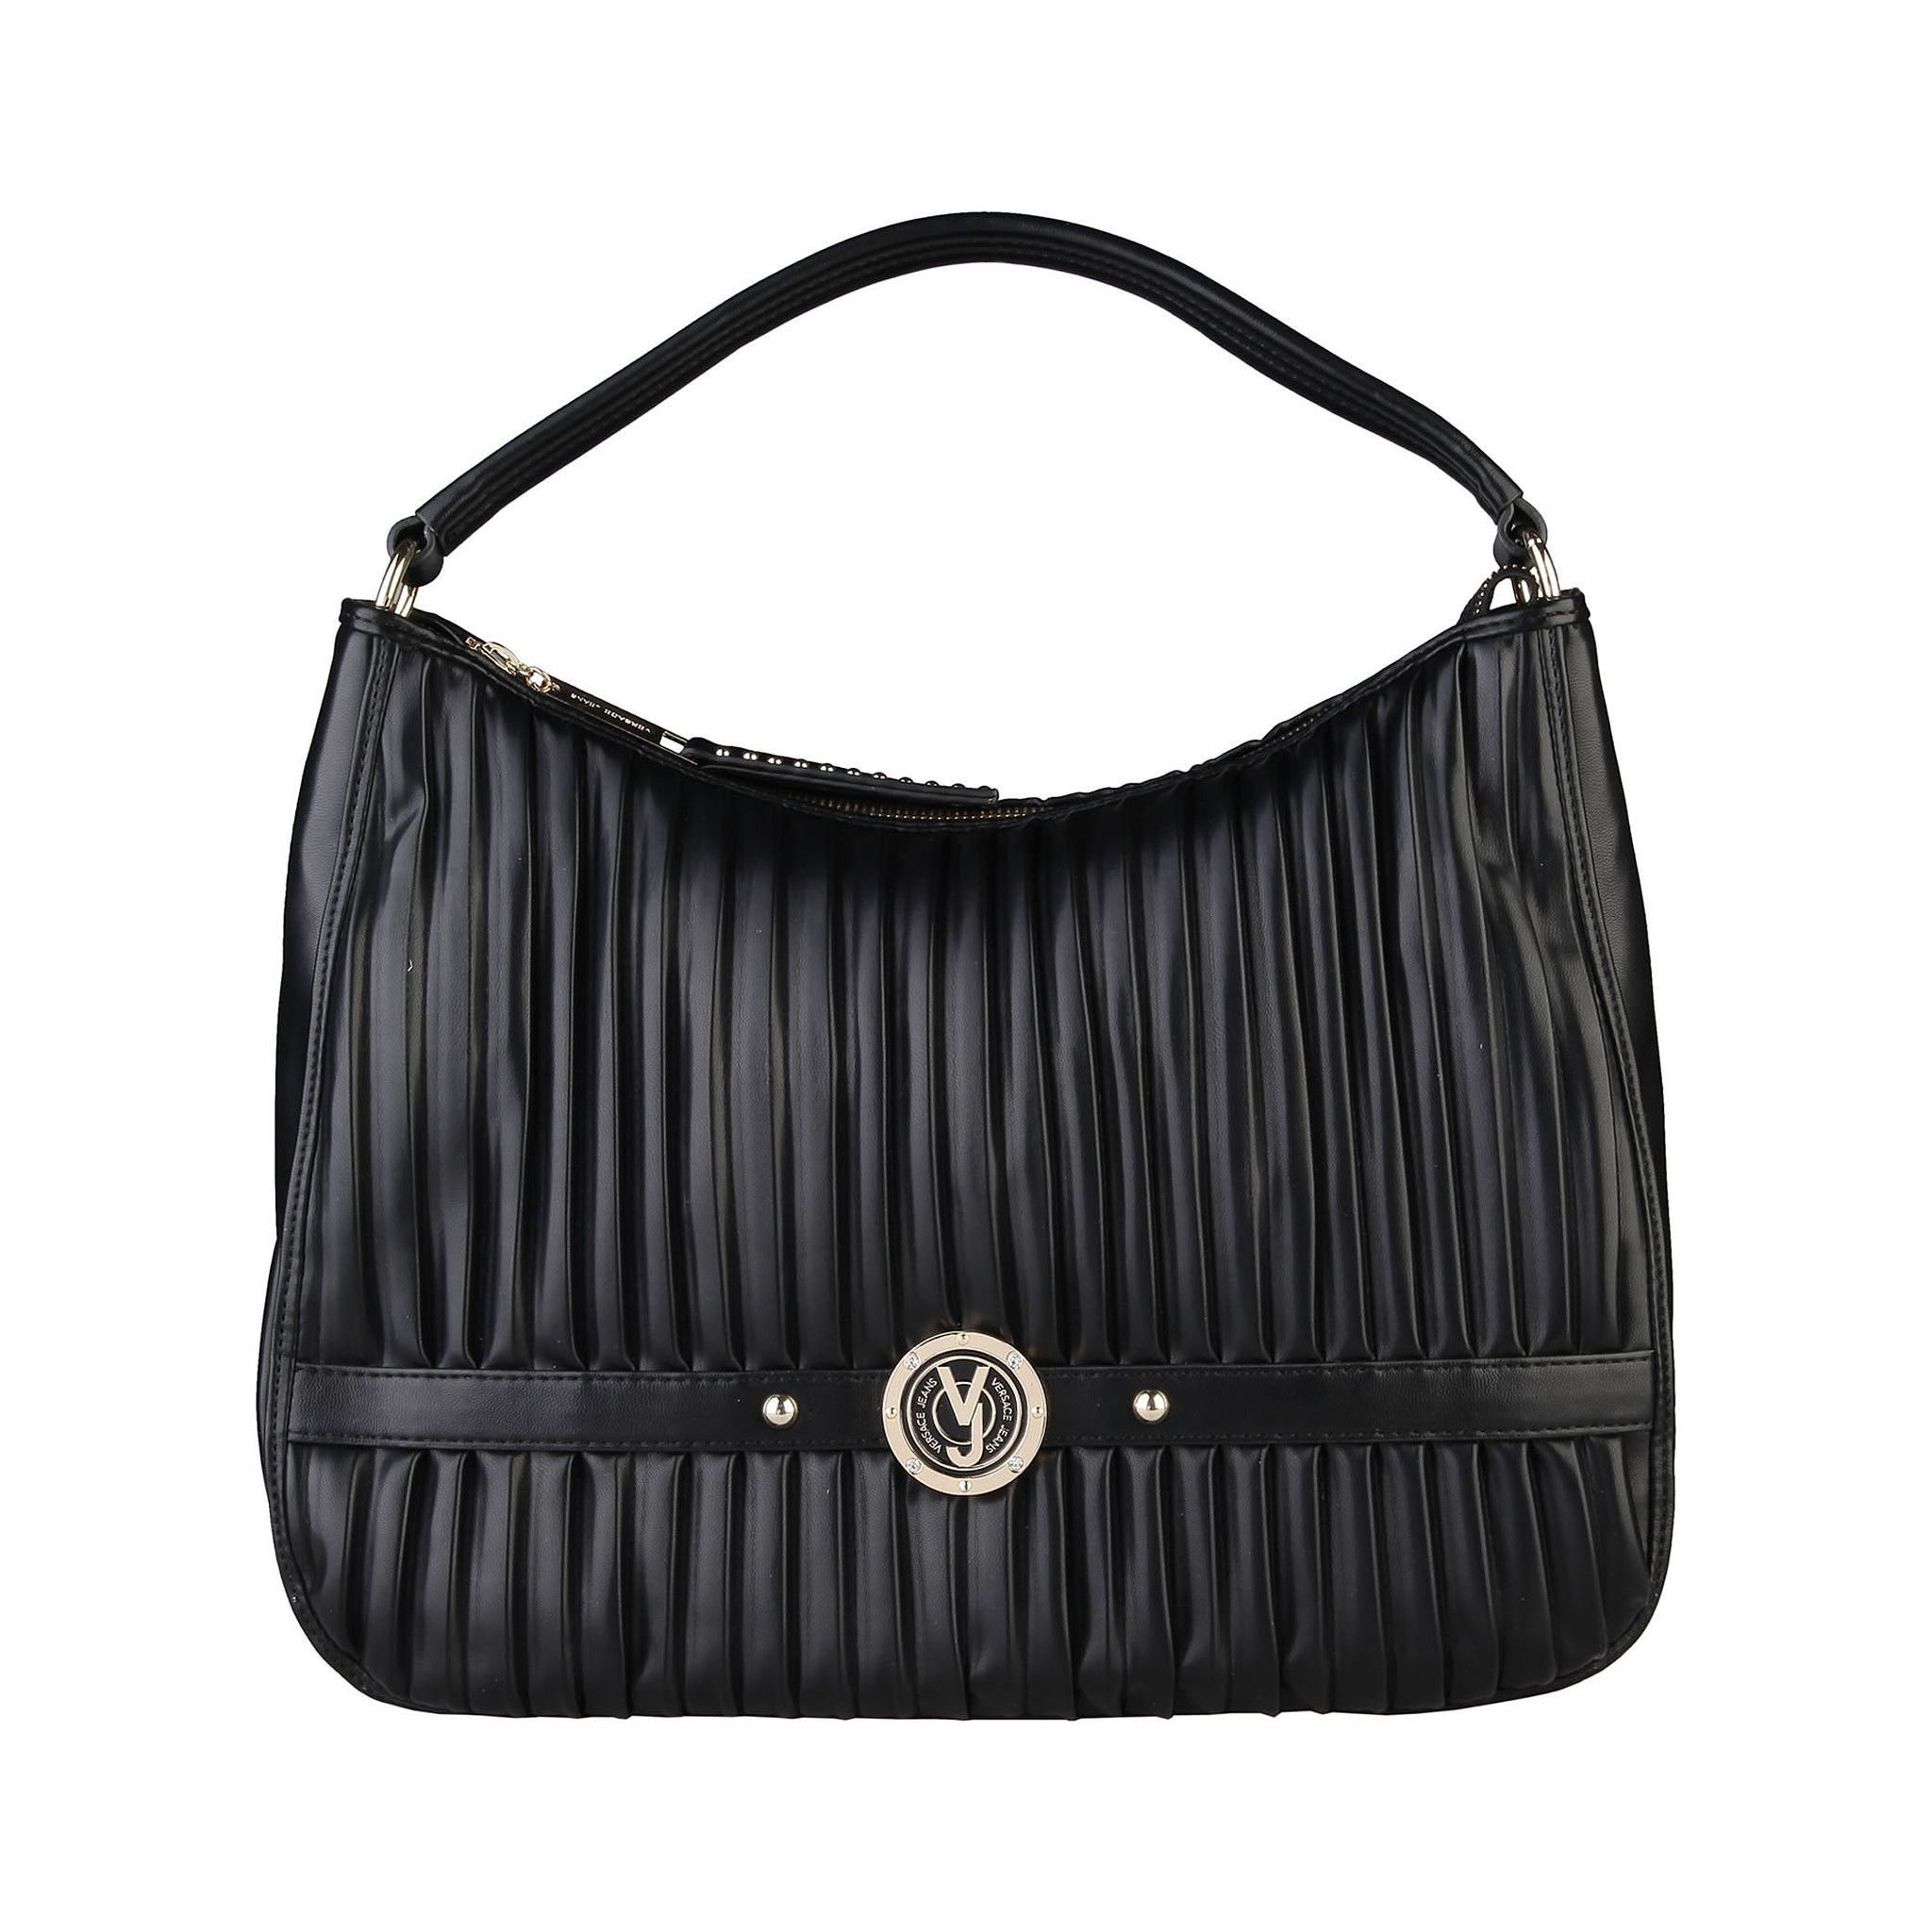 Versace Jeans Shoulder Bags On Sale - € 136.14 #offers #handbags ...